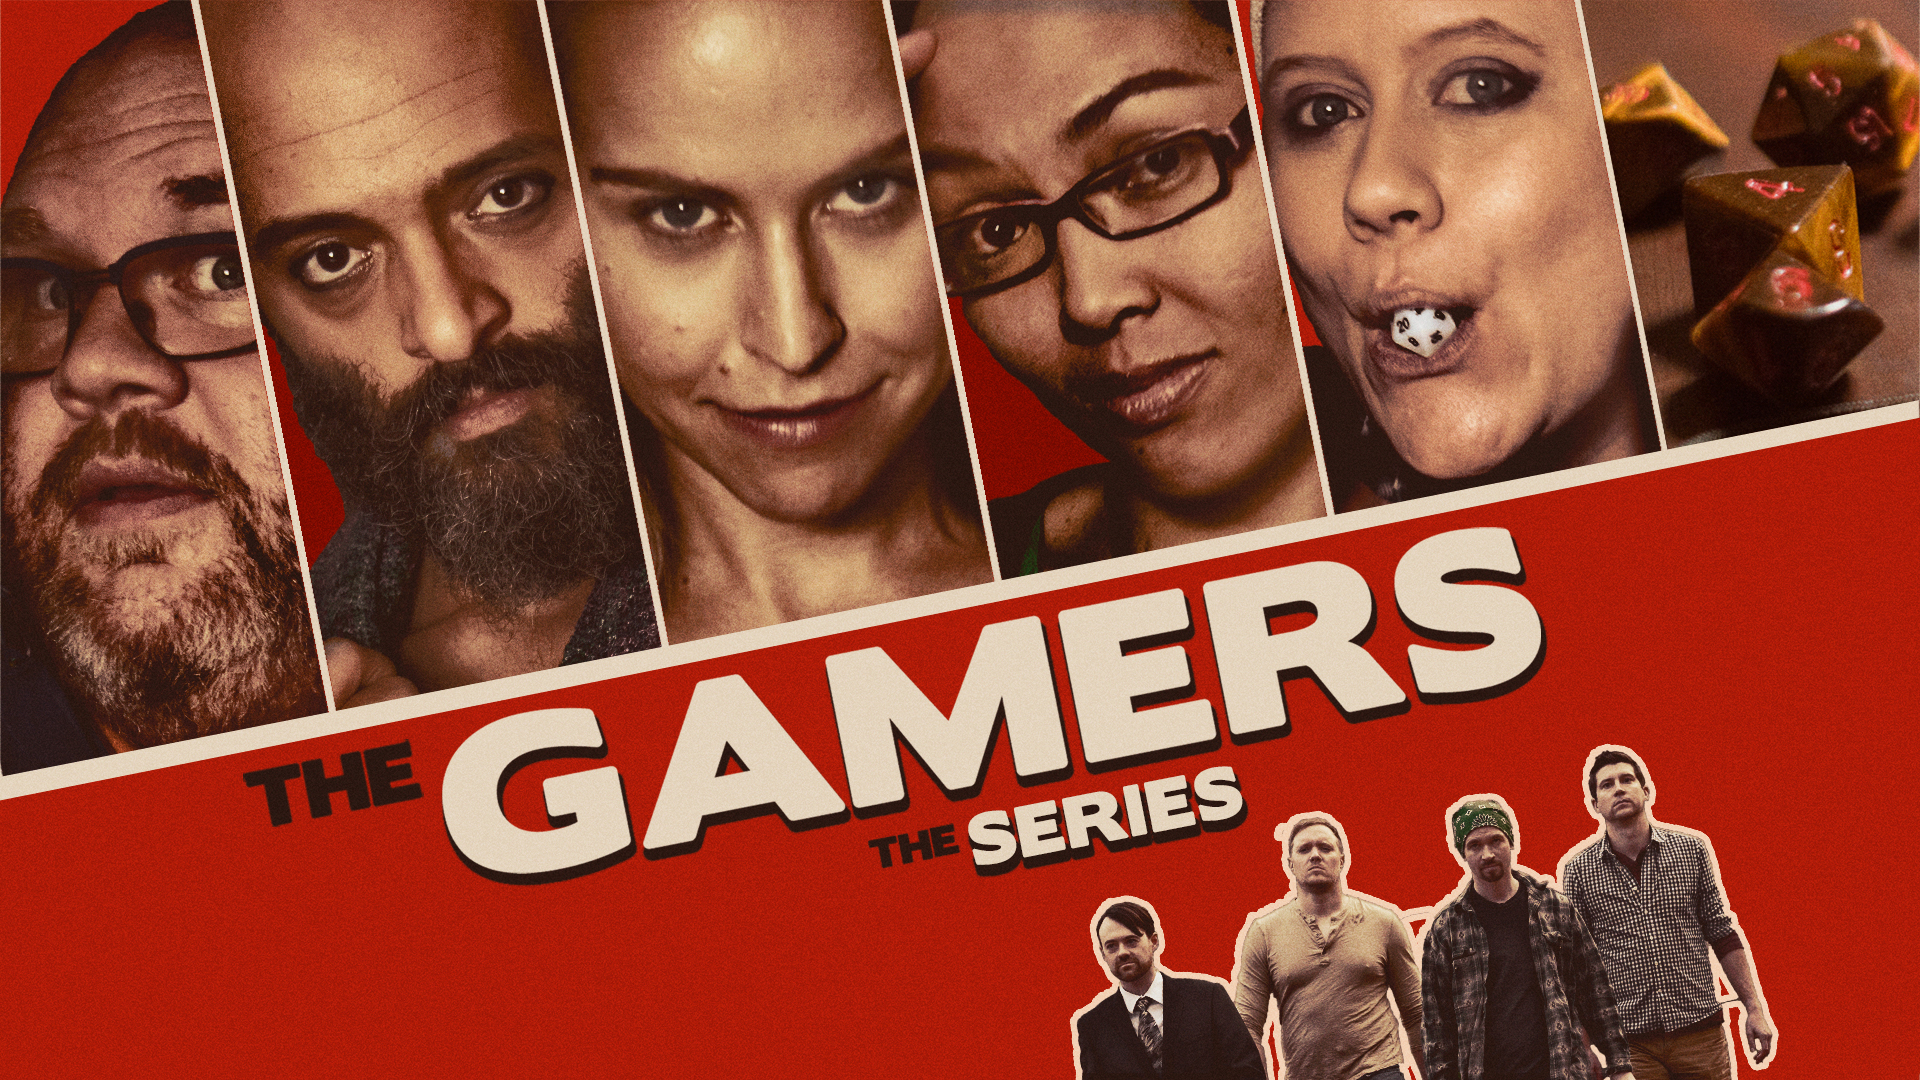 The Gamers The Series